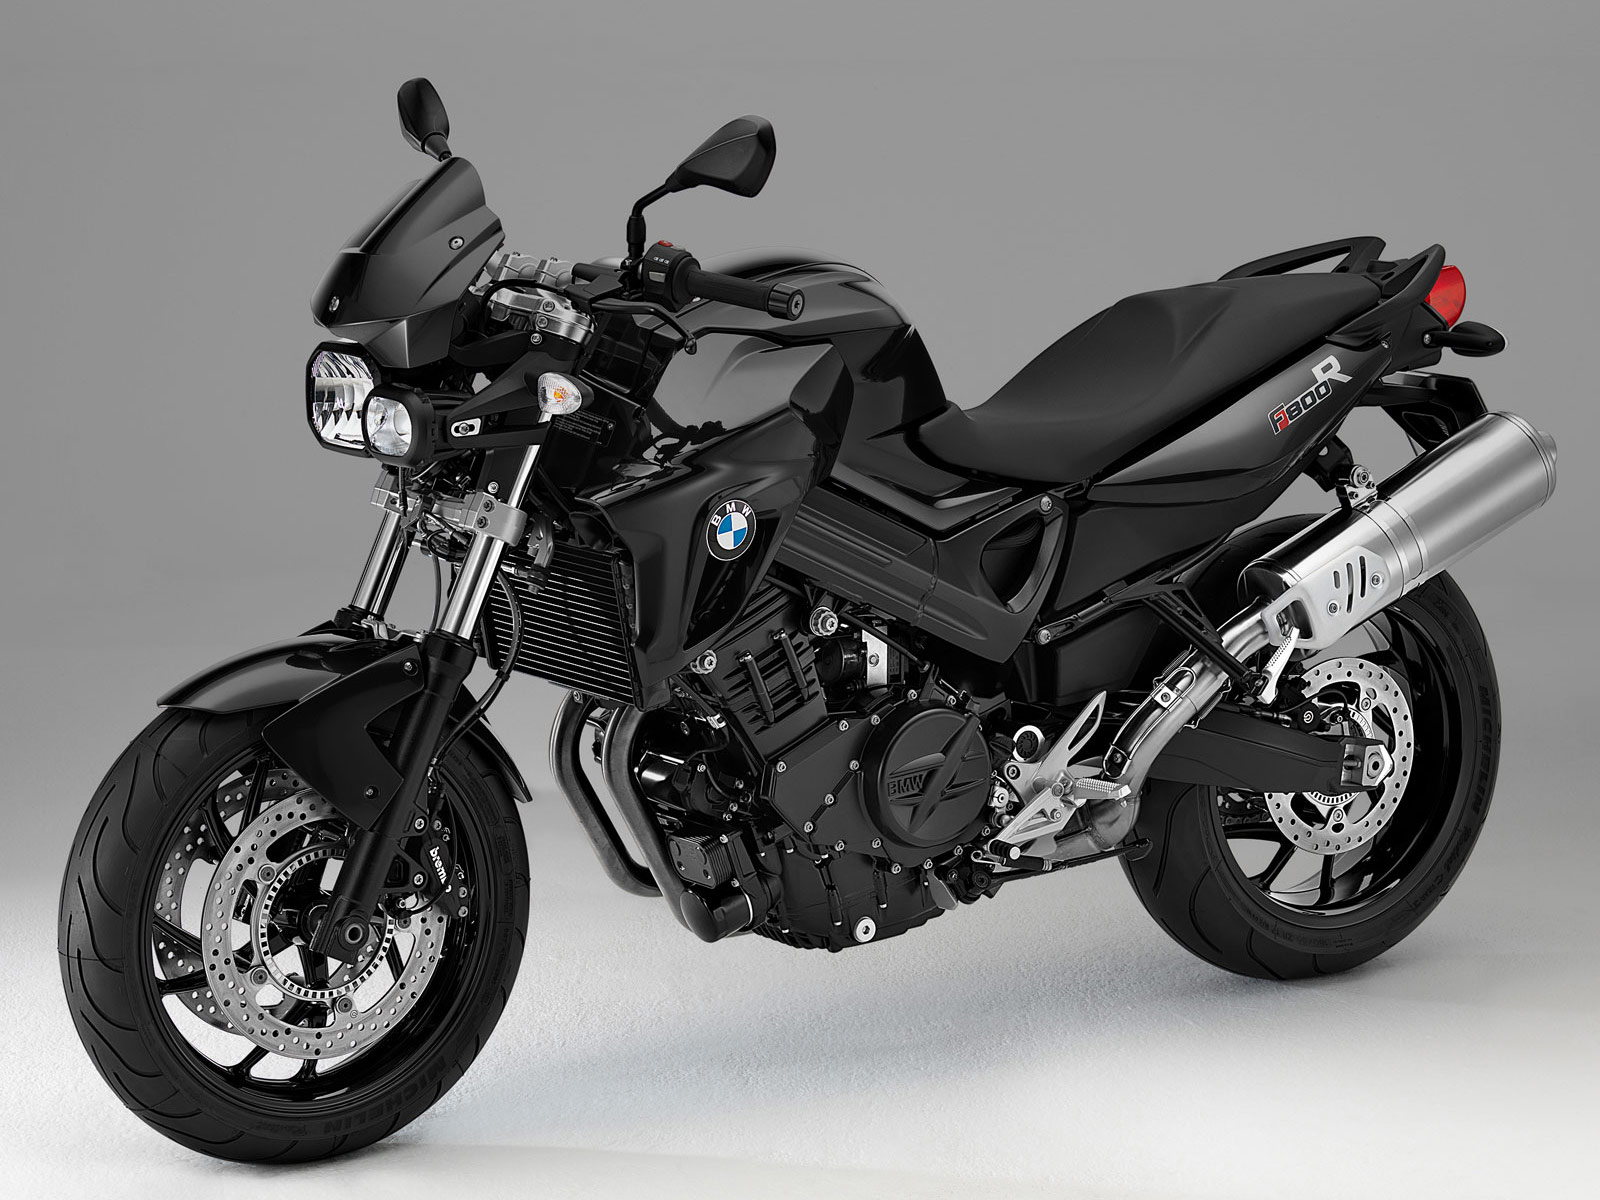 2013 Bmw F800r Motorcycle Insurance Information